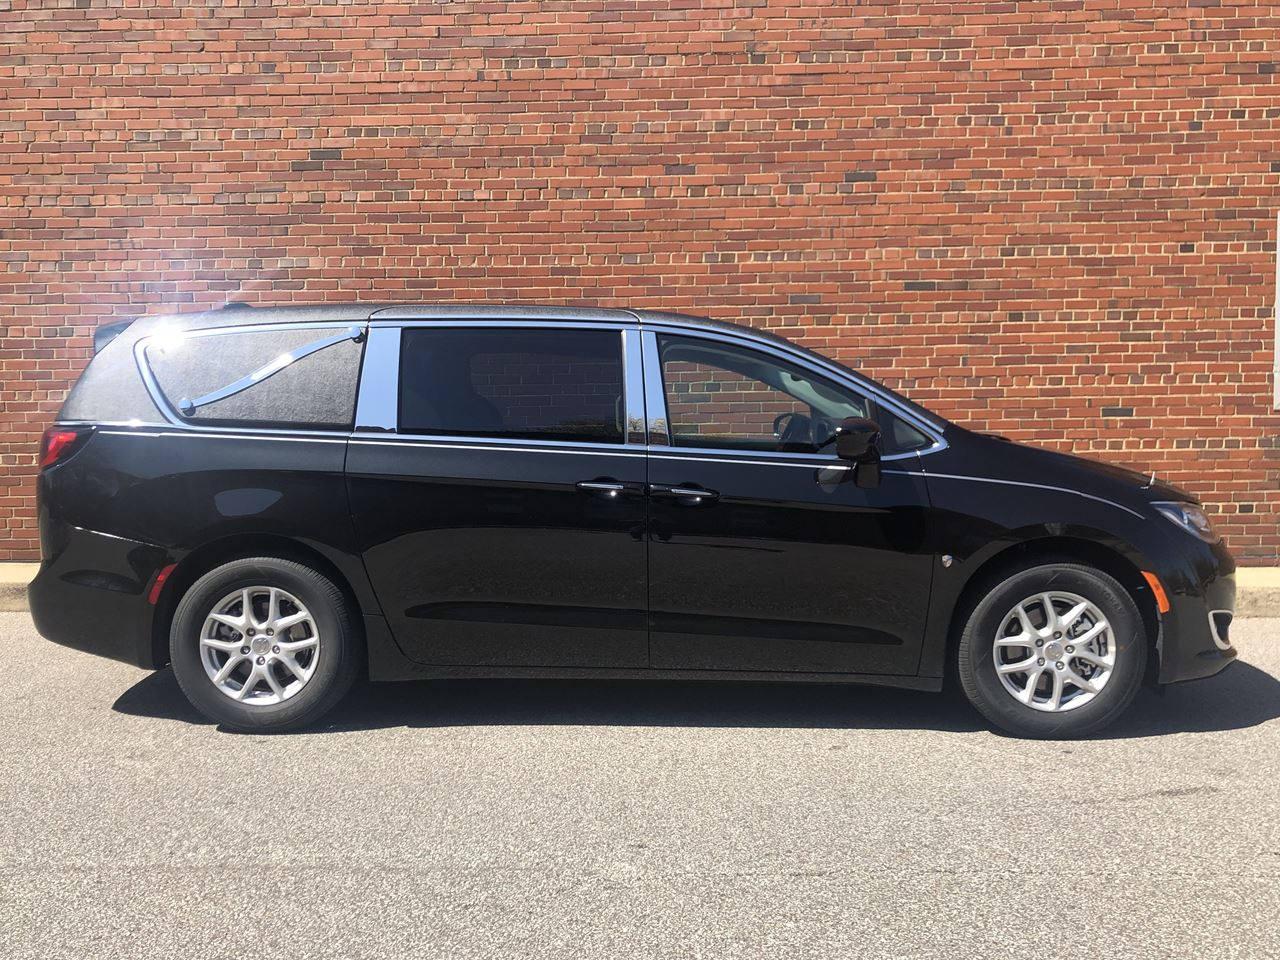 2020 Chrysler K2 Pacifica 1st Call Van